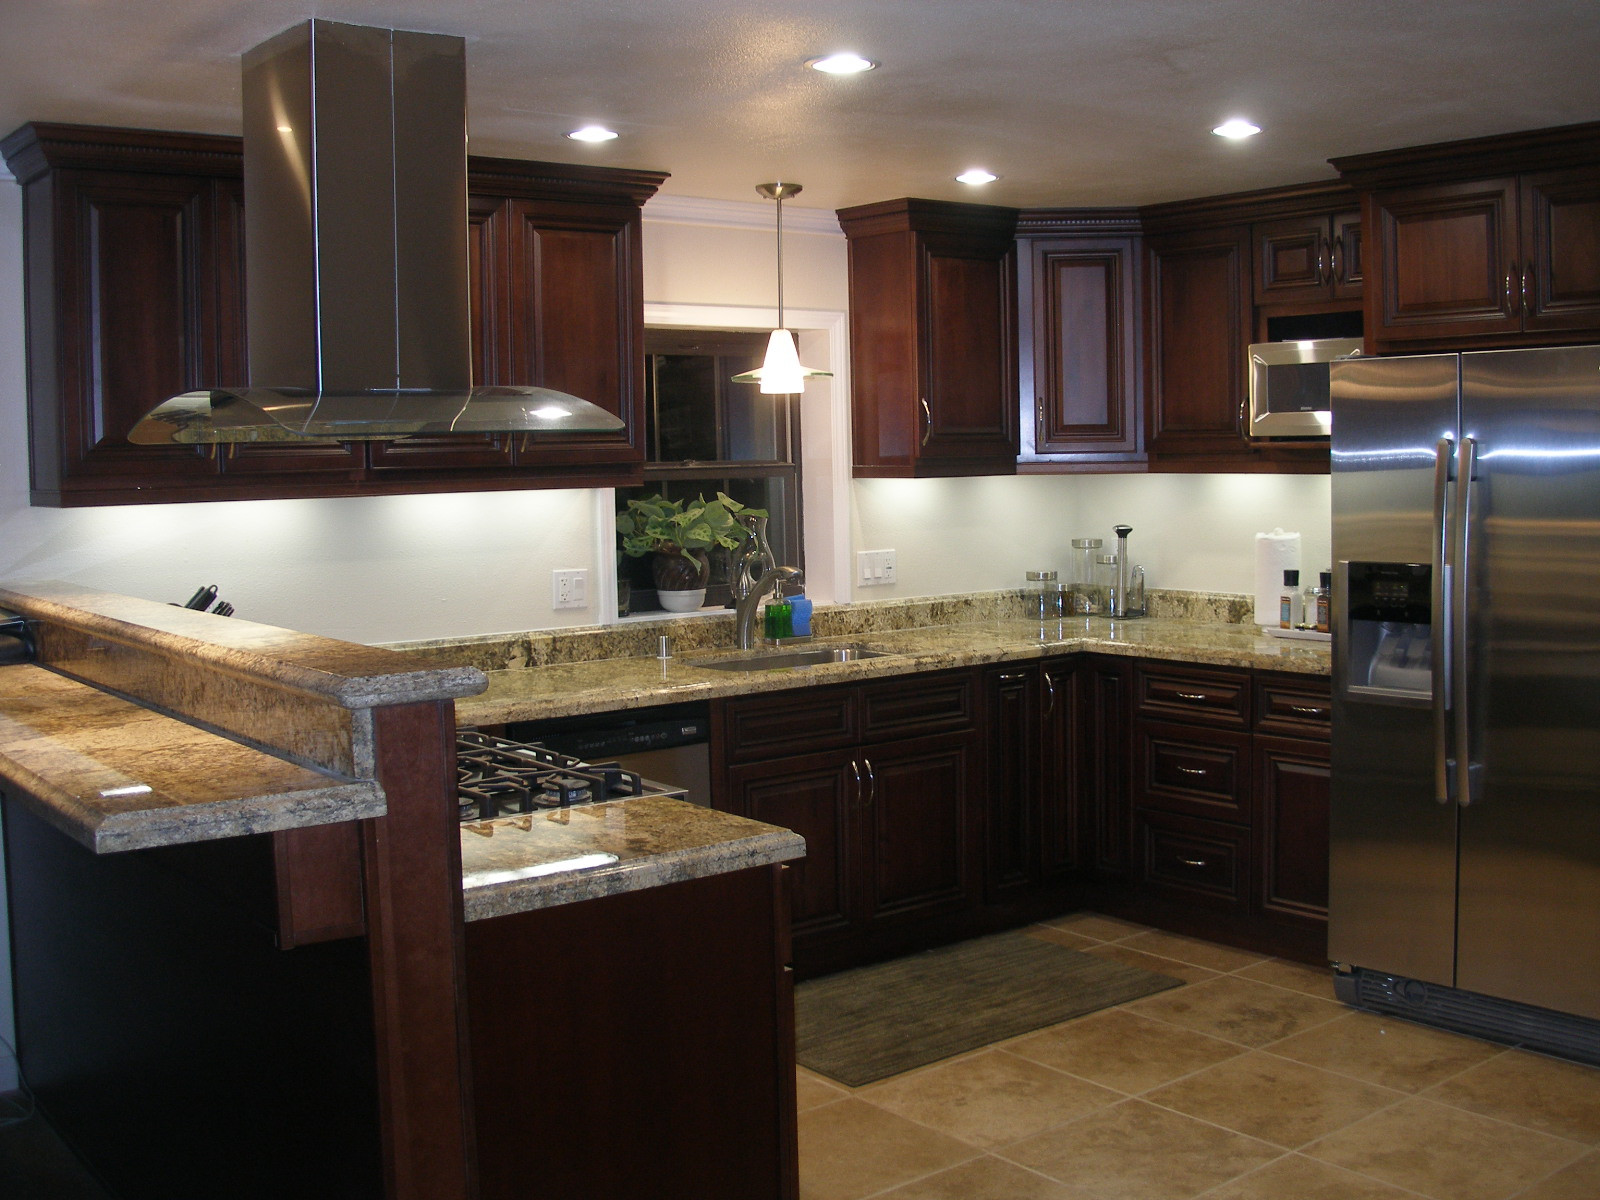 Kitchen Remodel Ideas - Bay Easy Construction